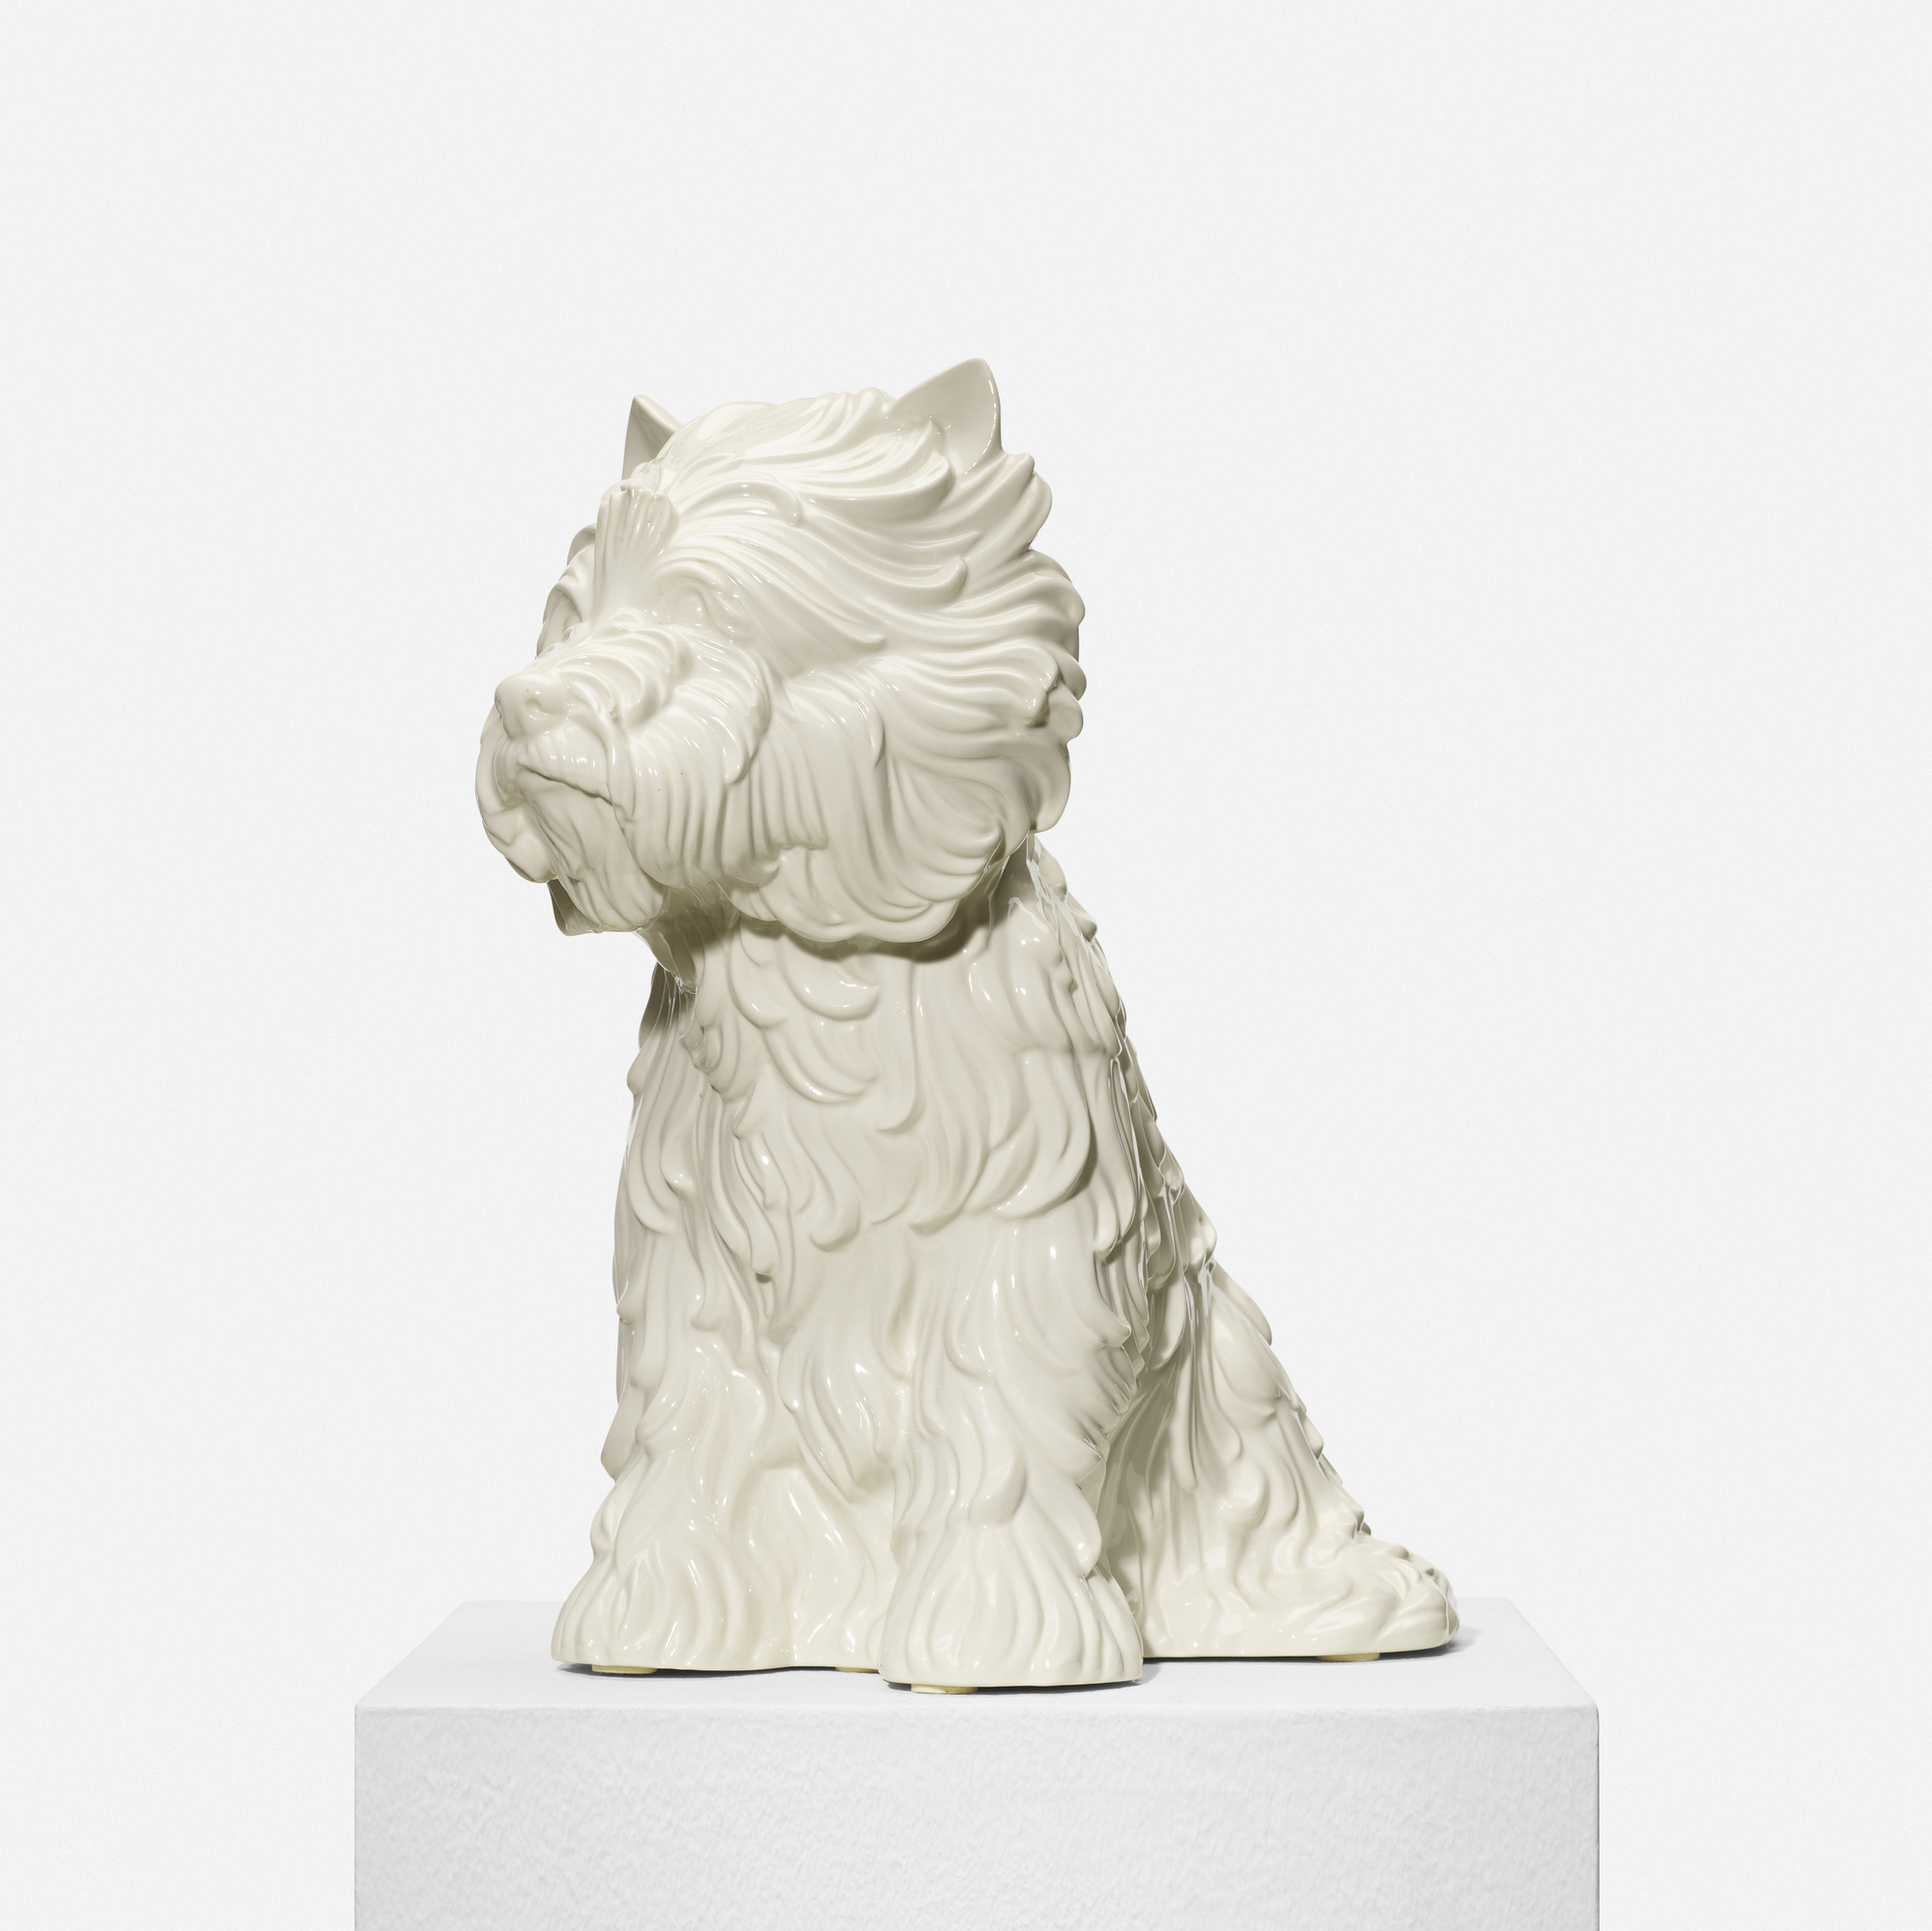 227: Jeff Koons / Puppy (vase) (1 of 2)